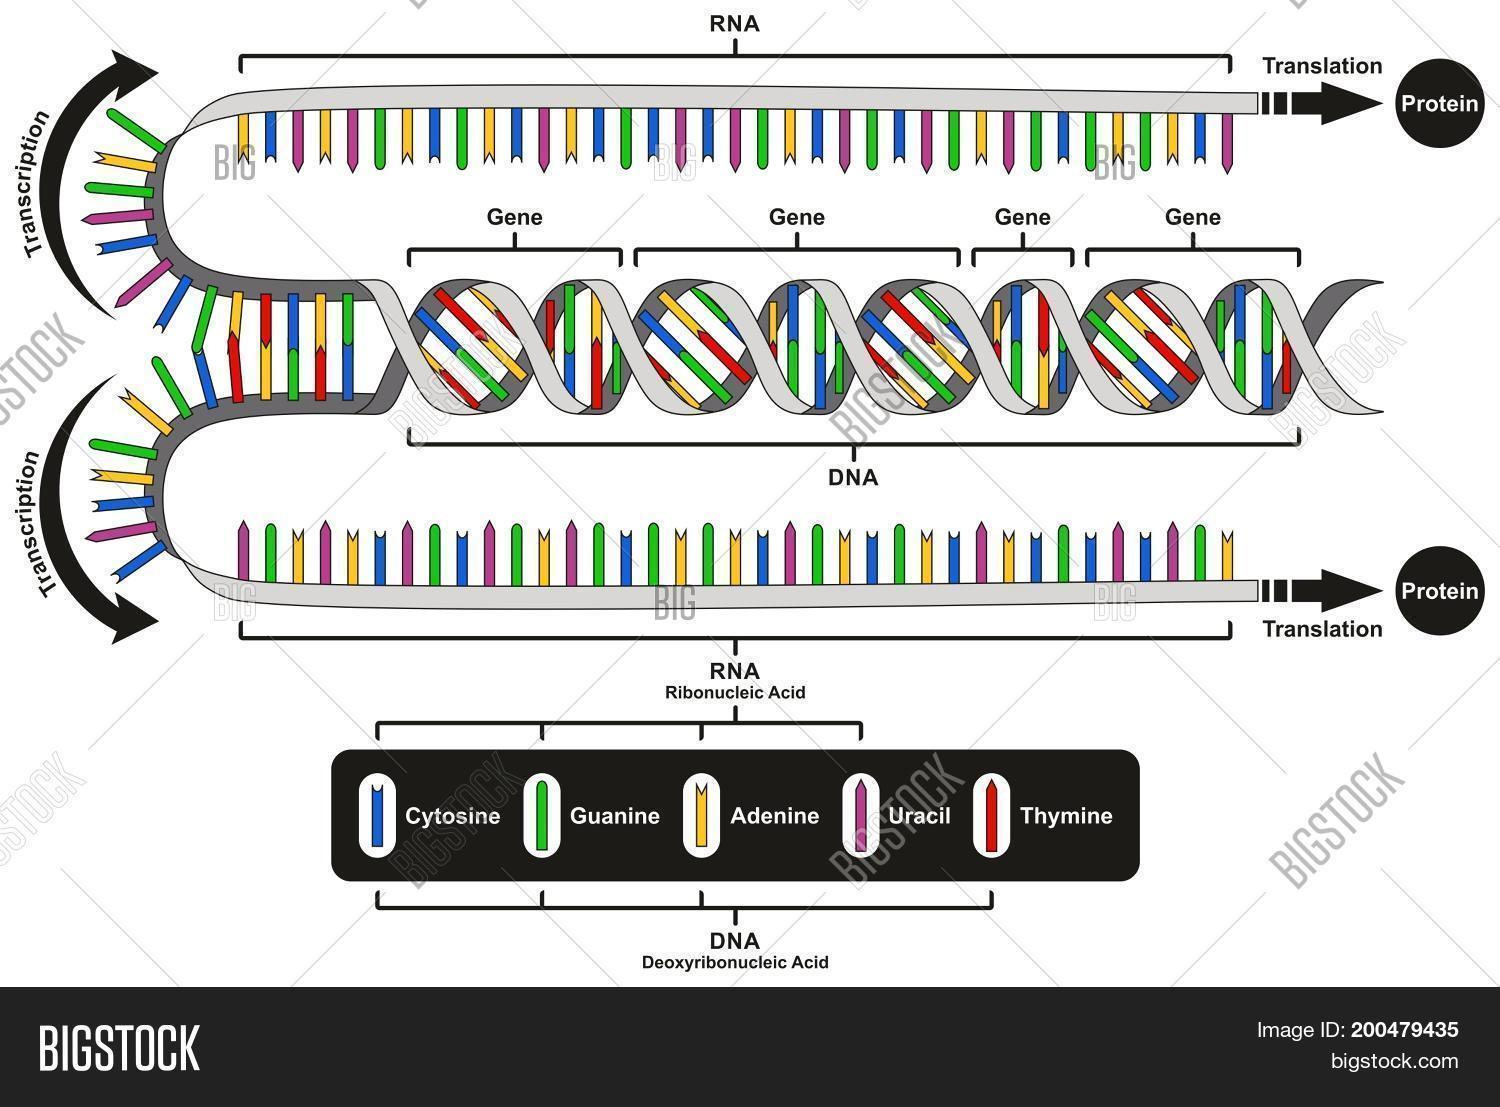 Central dogma gene expression image photo bigstock central dogma of gene expression infographic diagram showing the process of transcription and translation from dna ccuart Choice Image